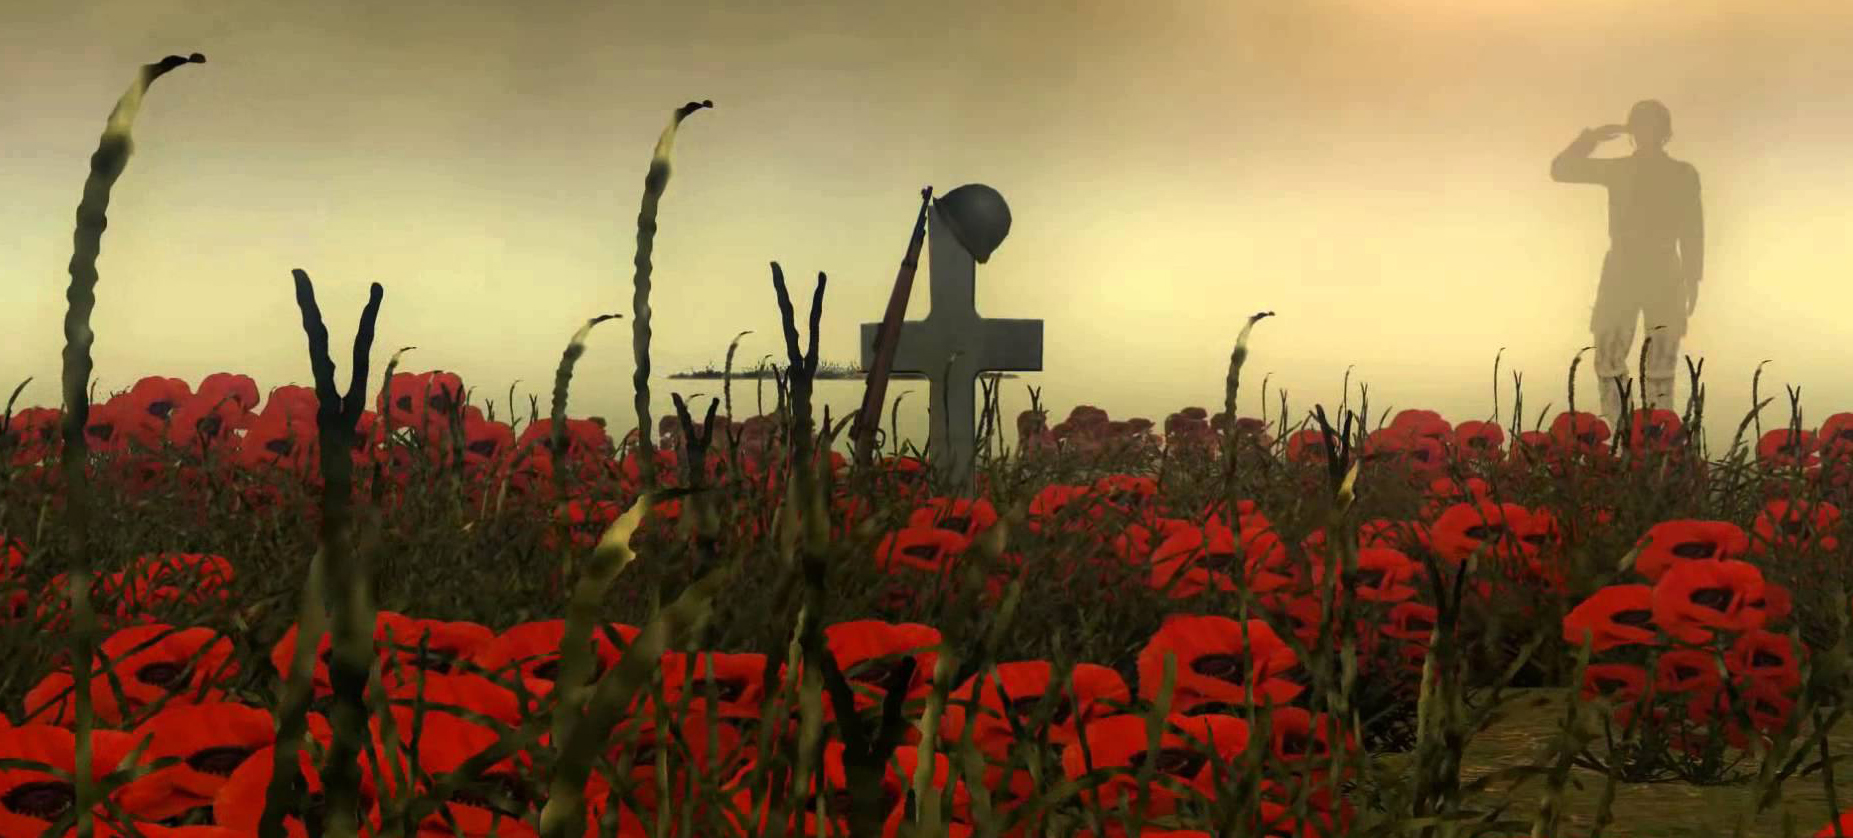 solider saluting cross in a field of poppies